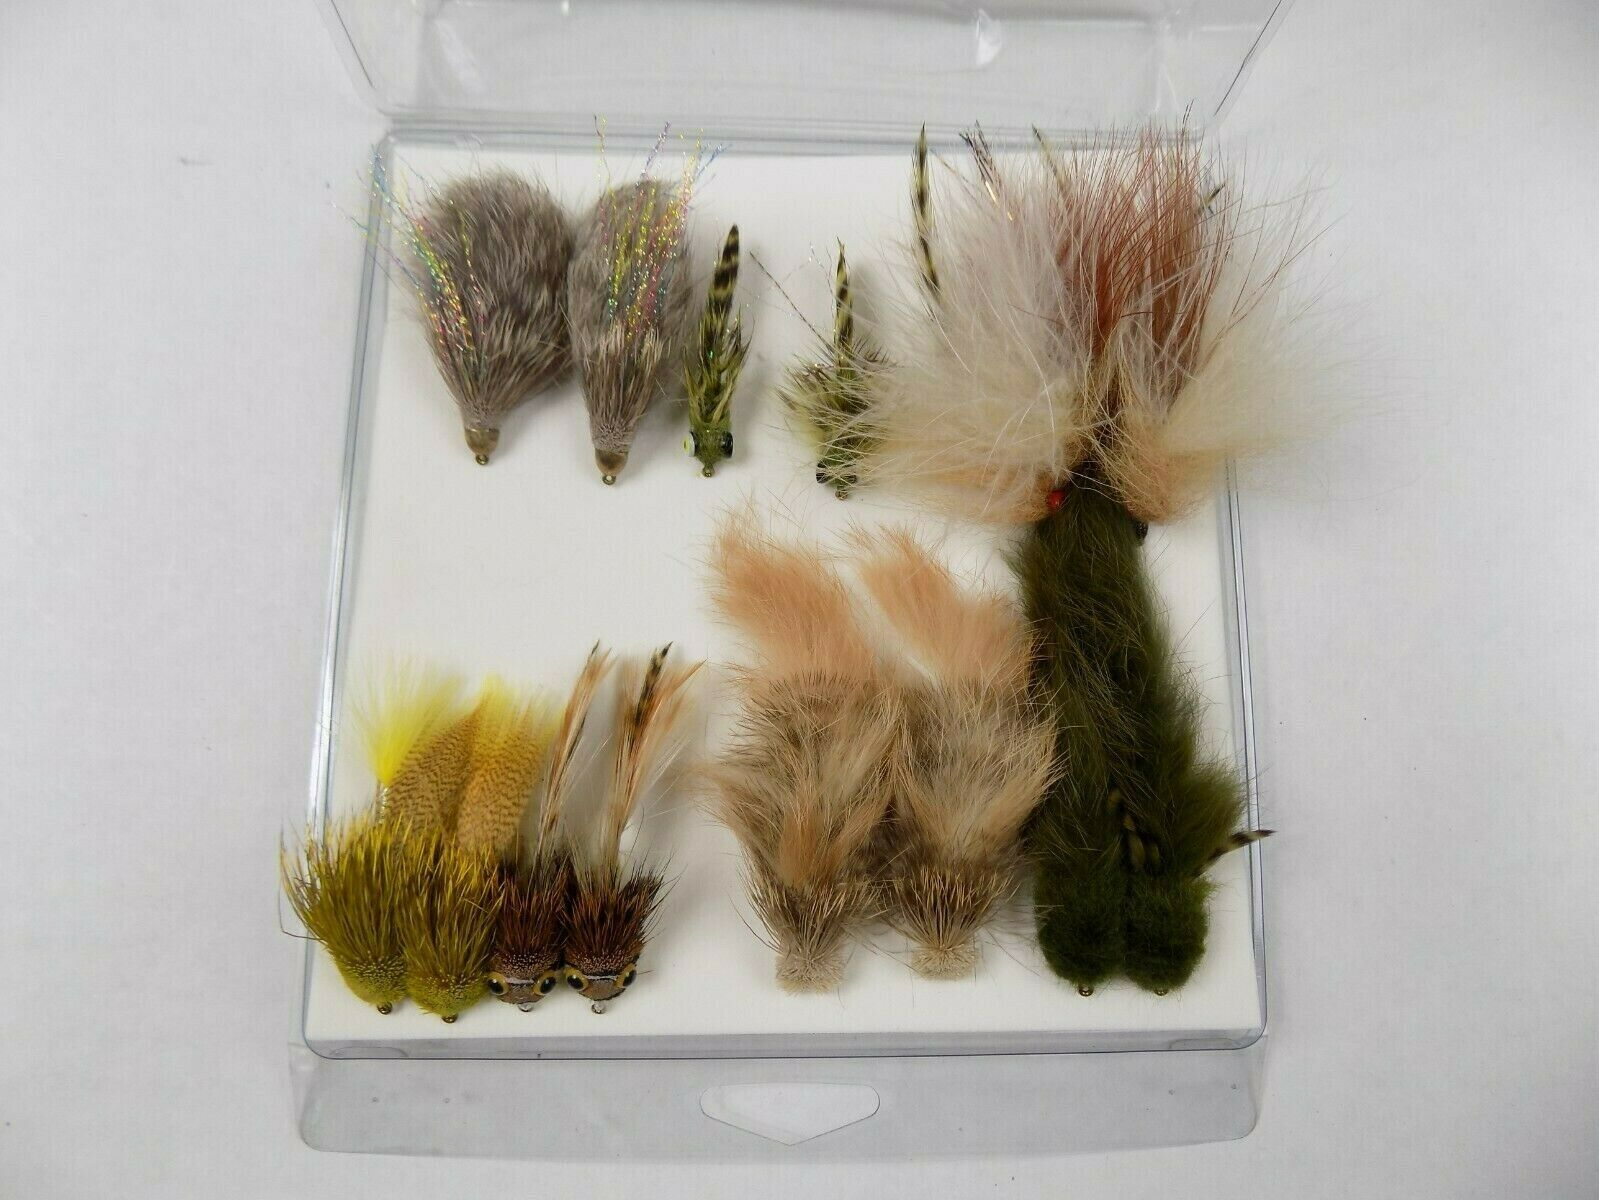 Vintage Fur Fishing Lures Bait Bait Bait Lot of 10 2f2d52